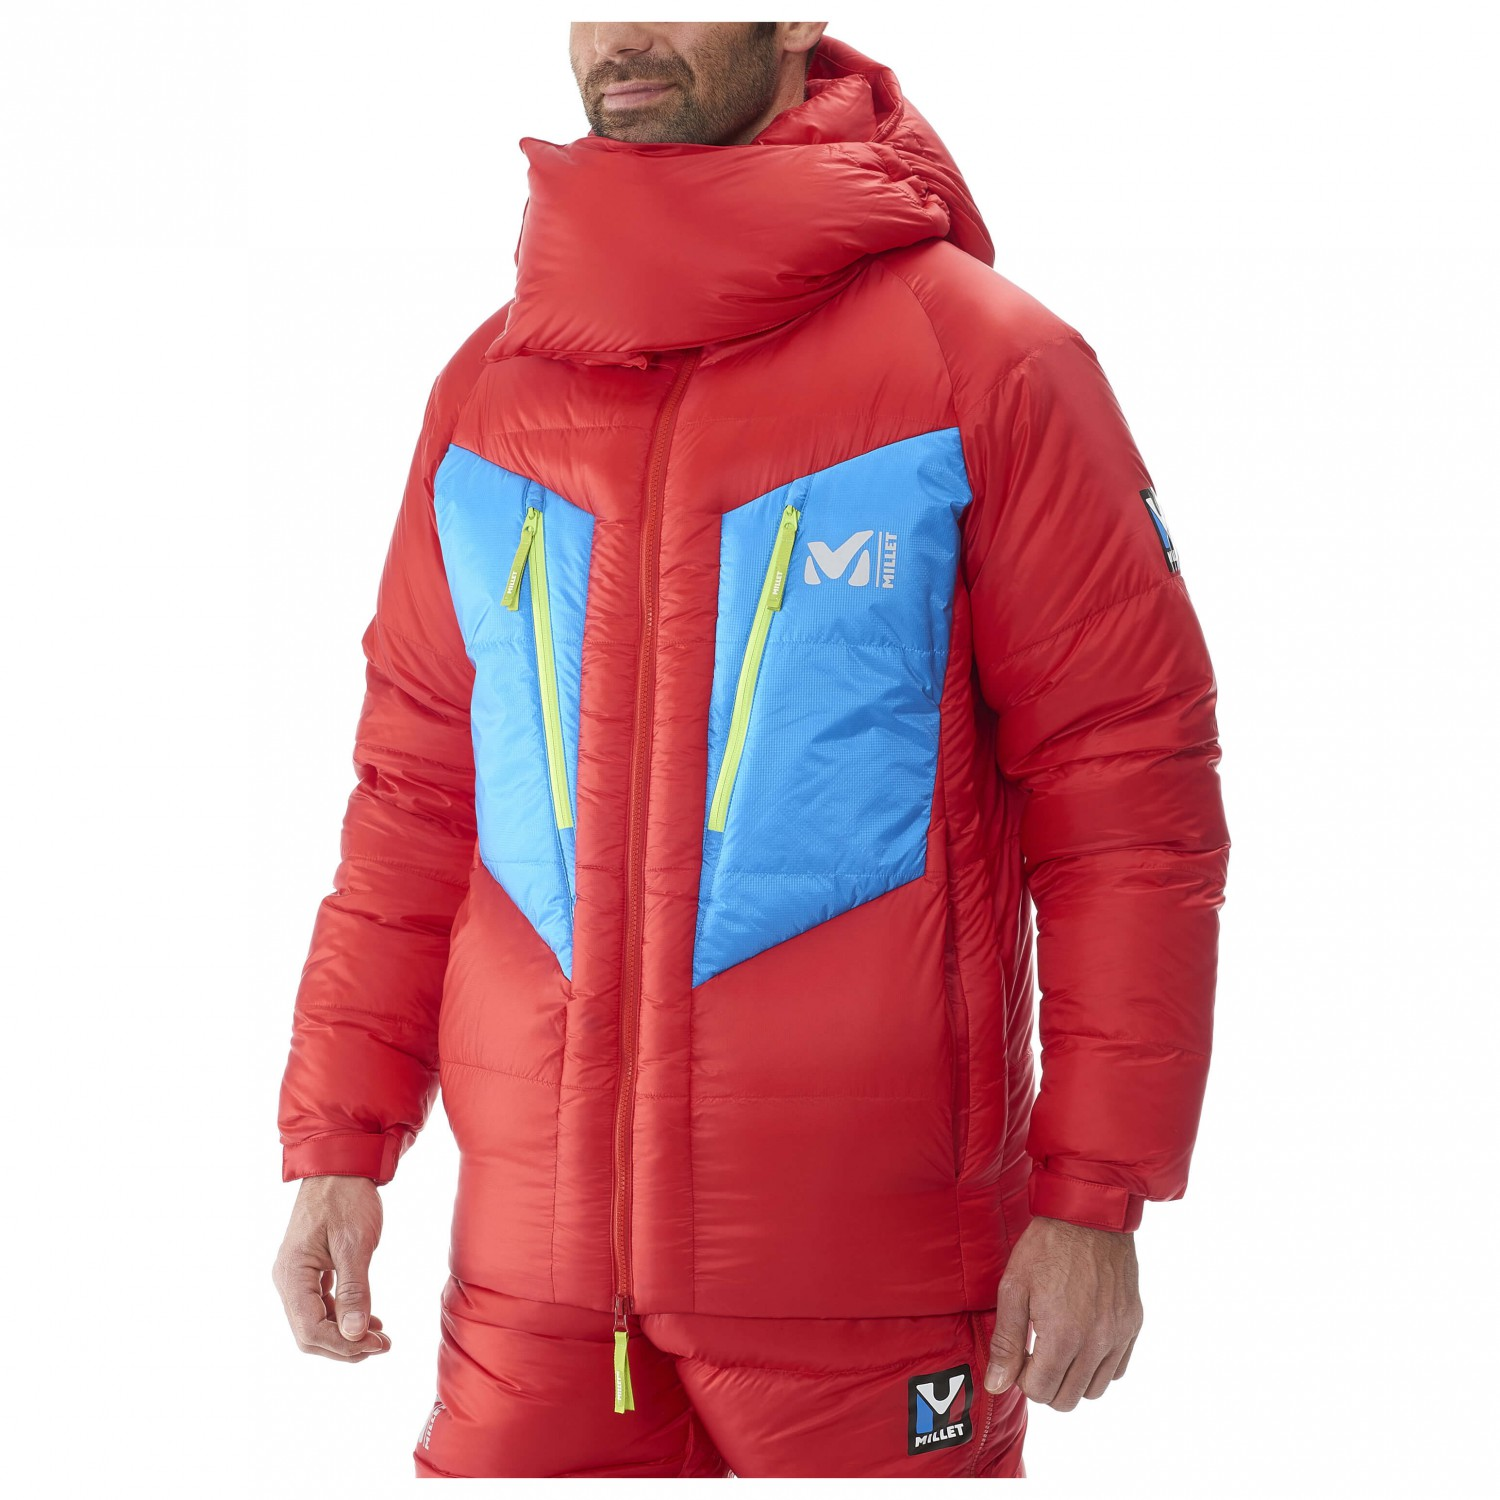 outlet store c5af2 5dbeb Millet MXP Trilogy Down Jacket - Giacca in piumino Uomo ...